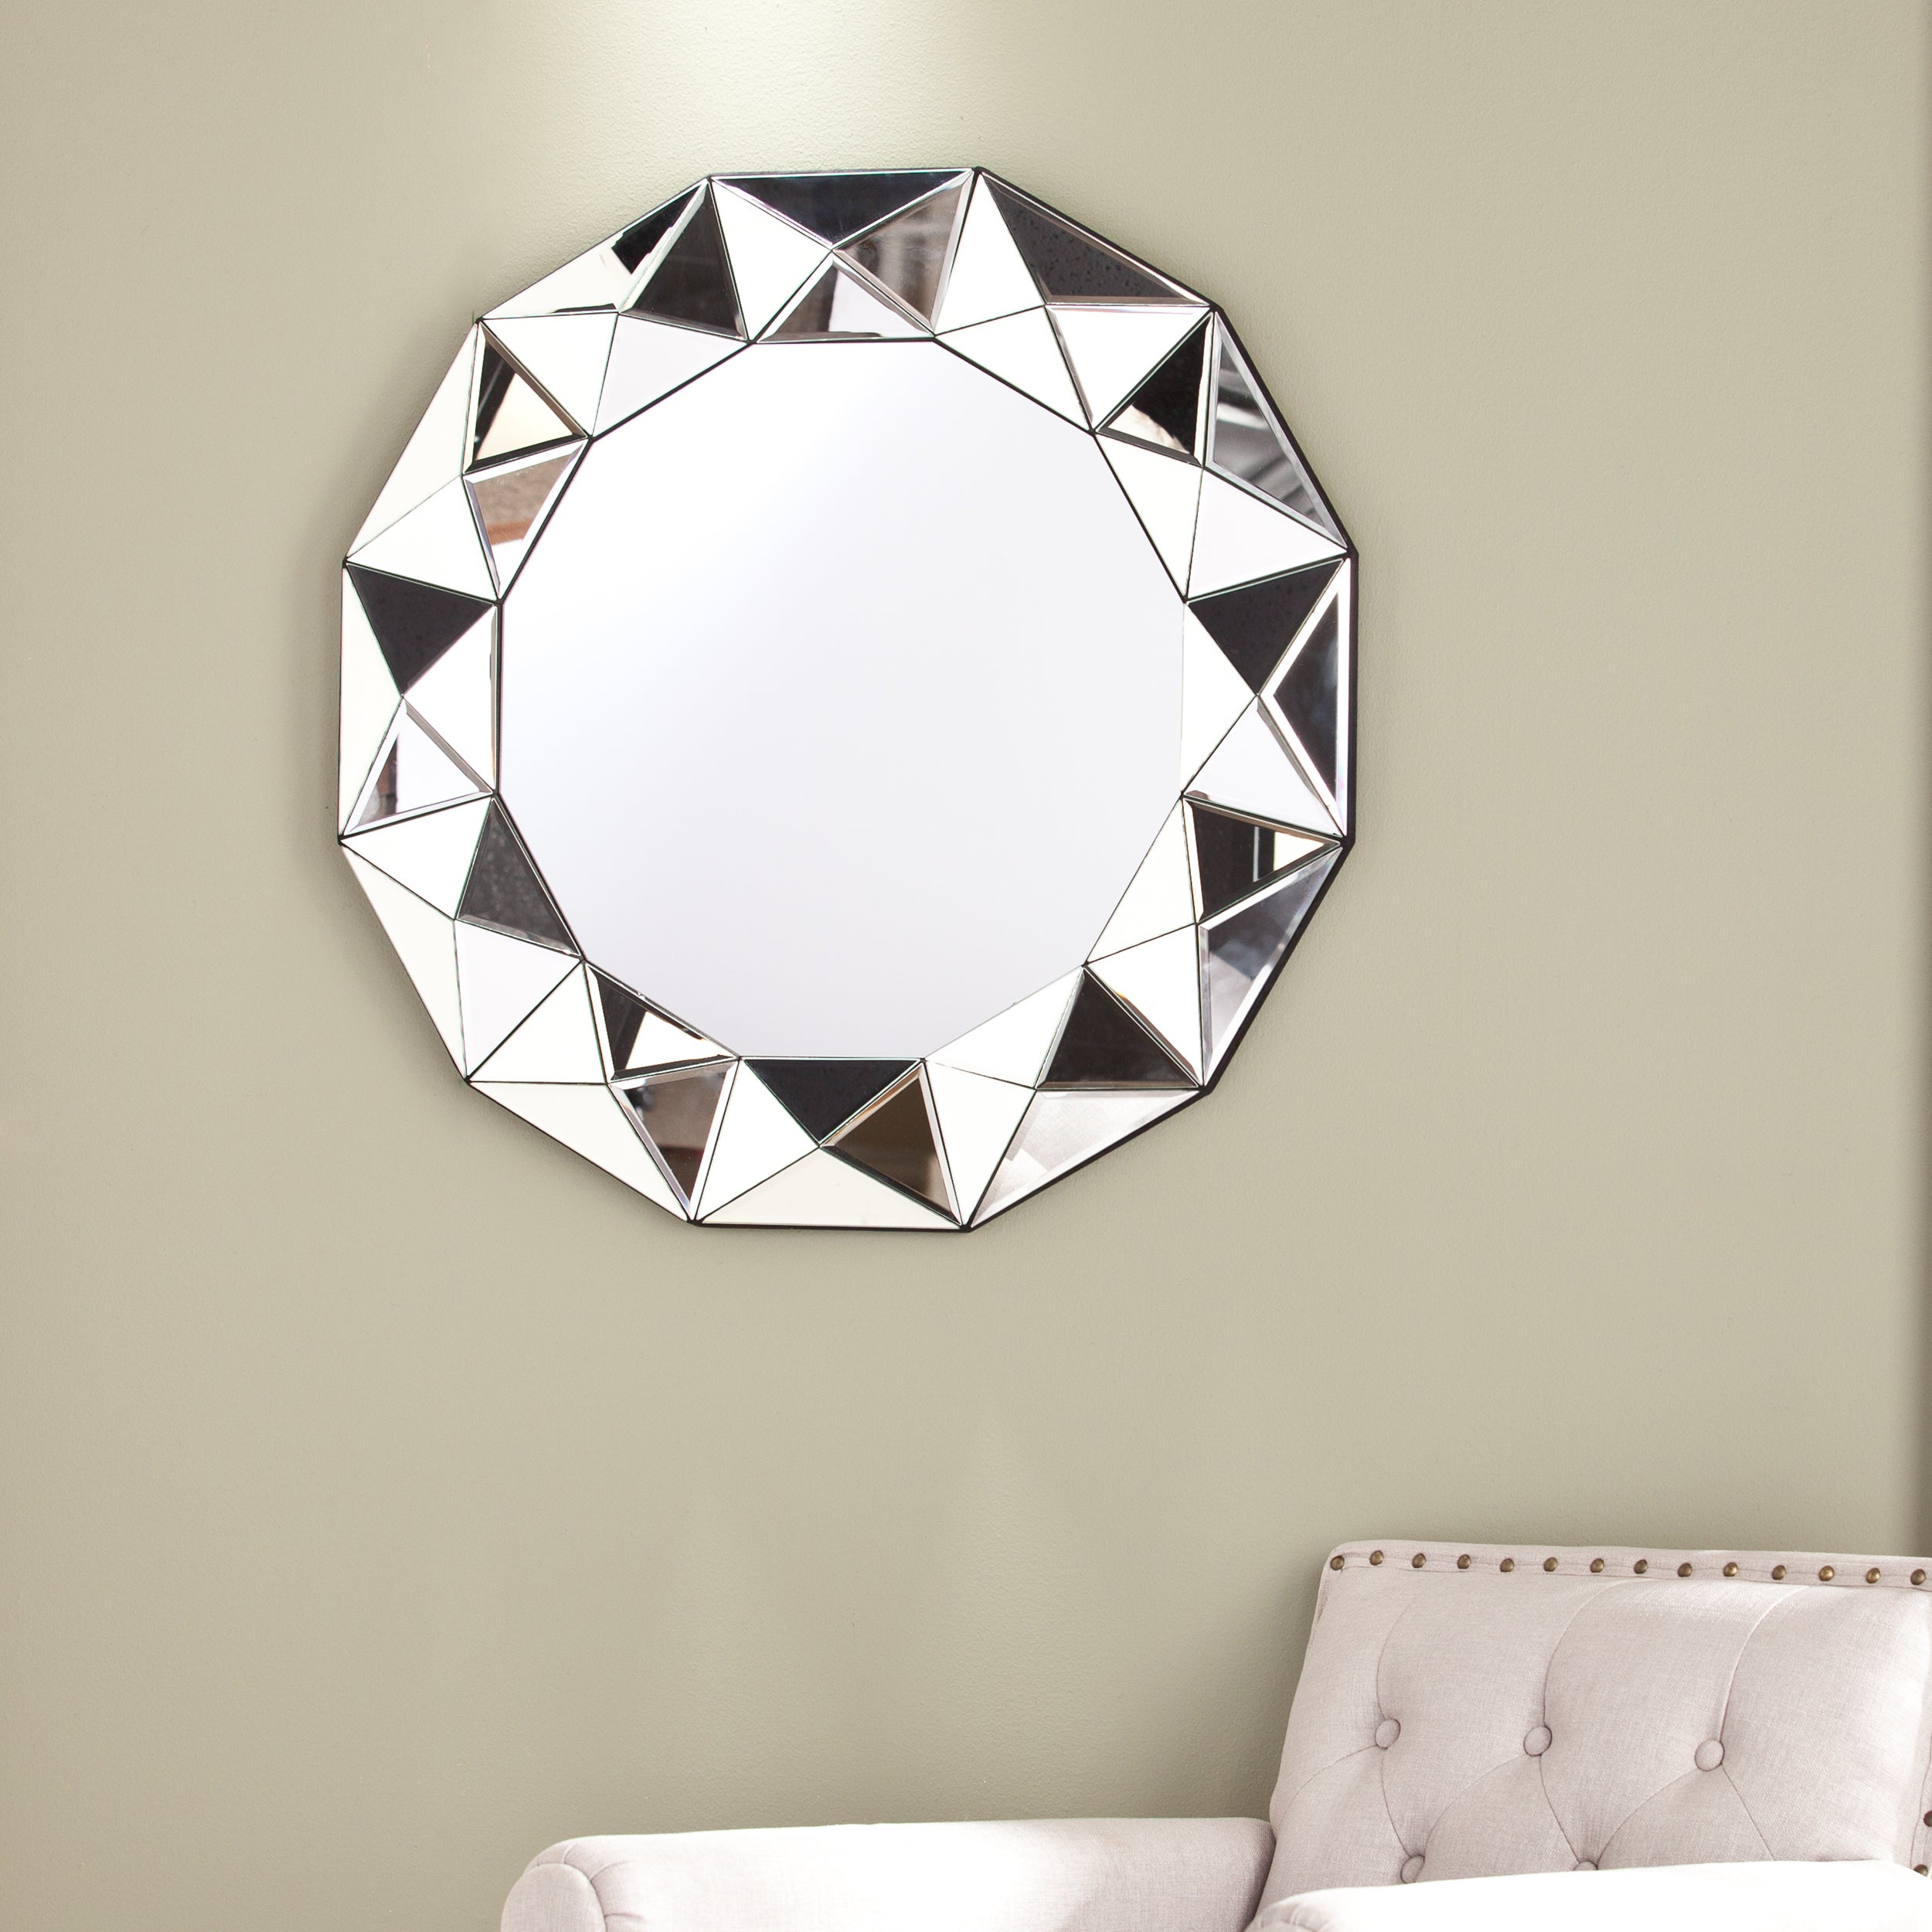 Harper Blvd Travers Decorative Mirror